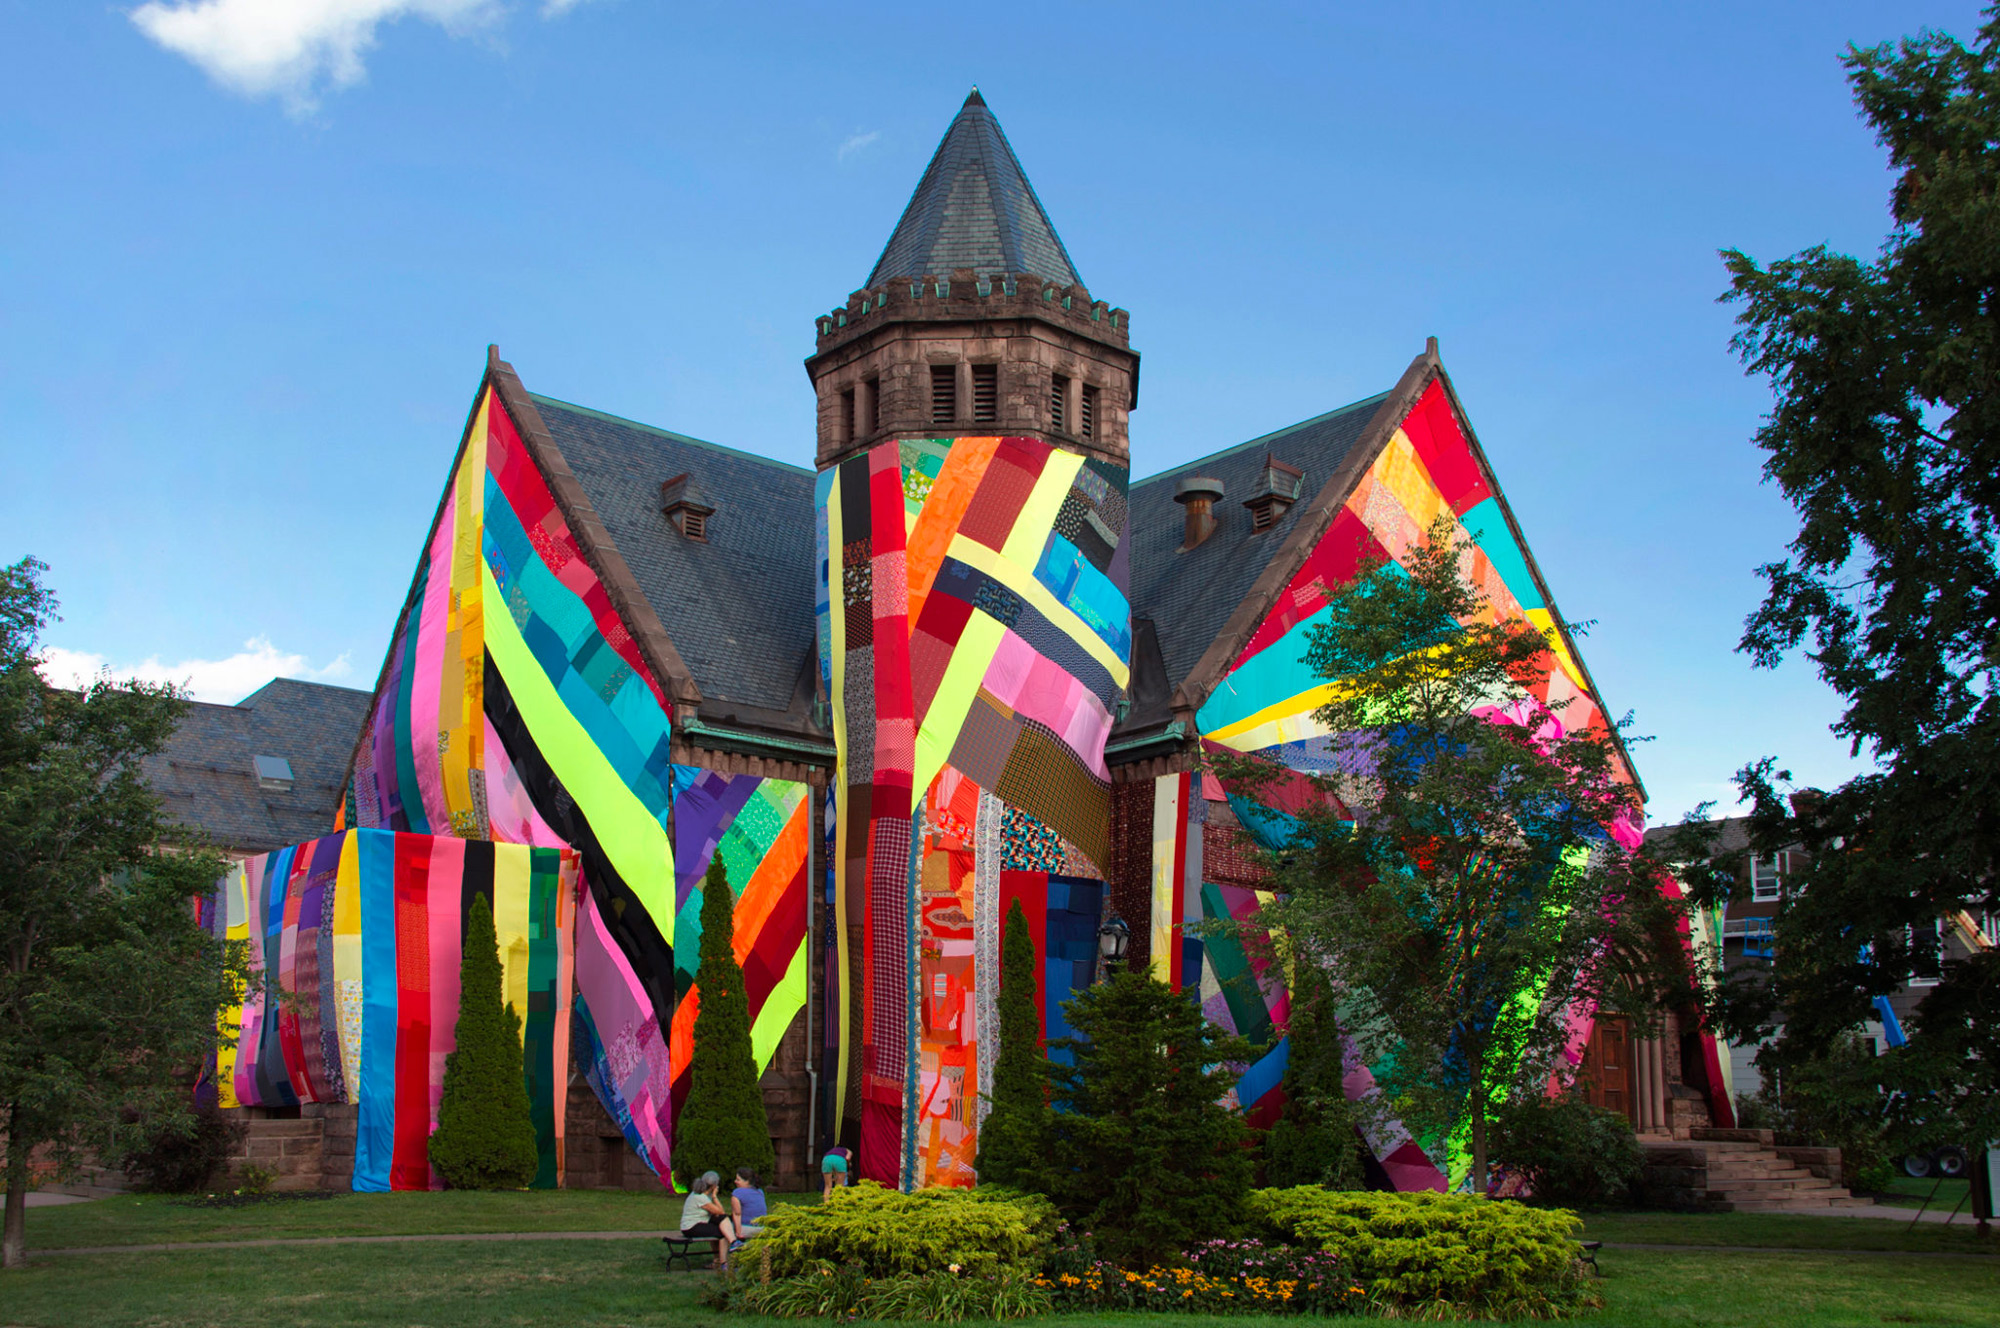 Enormous Panels of Patchworked Fabric Give Colorful Temporary Makeovers to Public Buildings